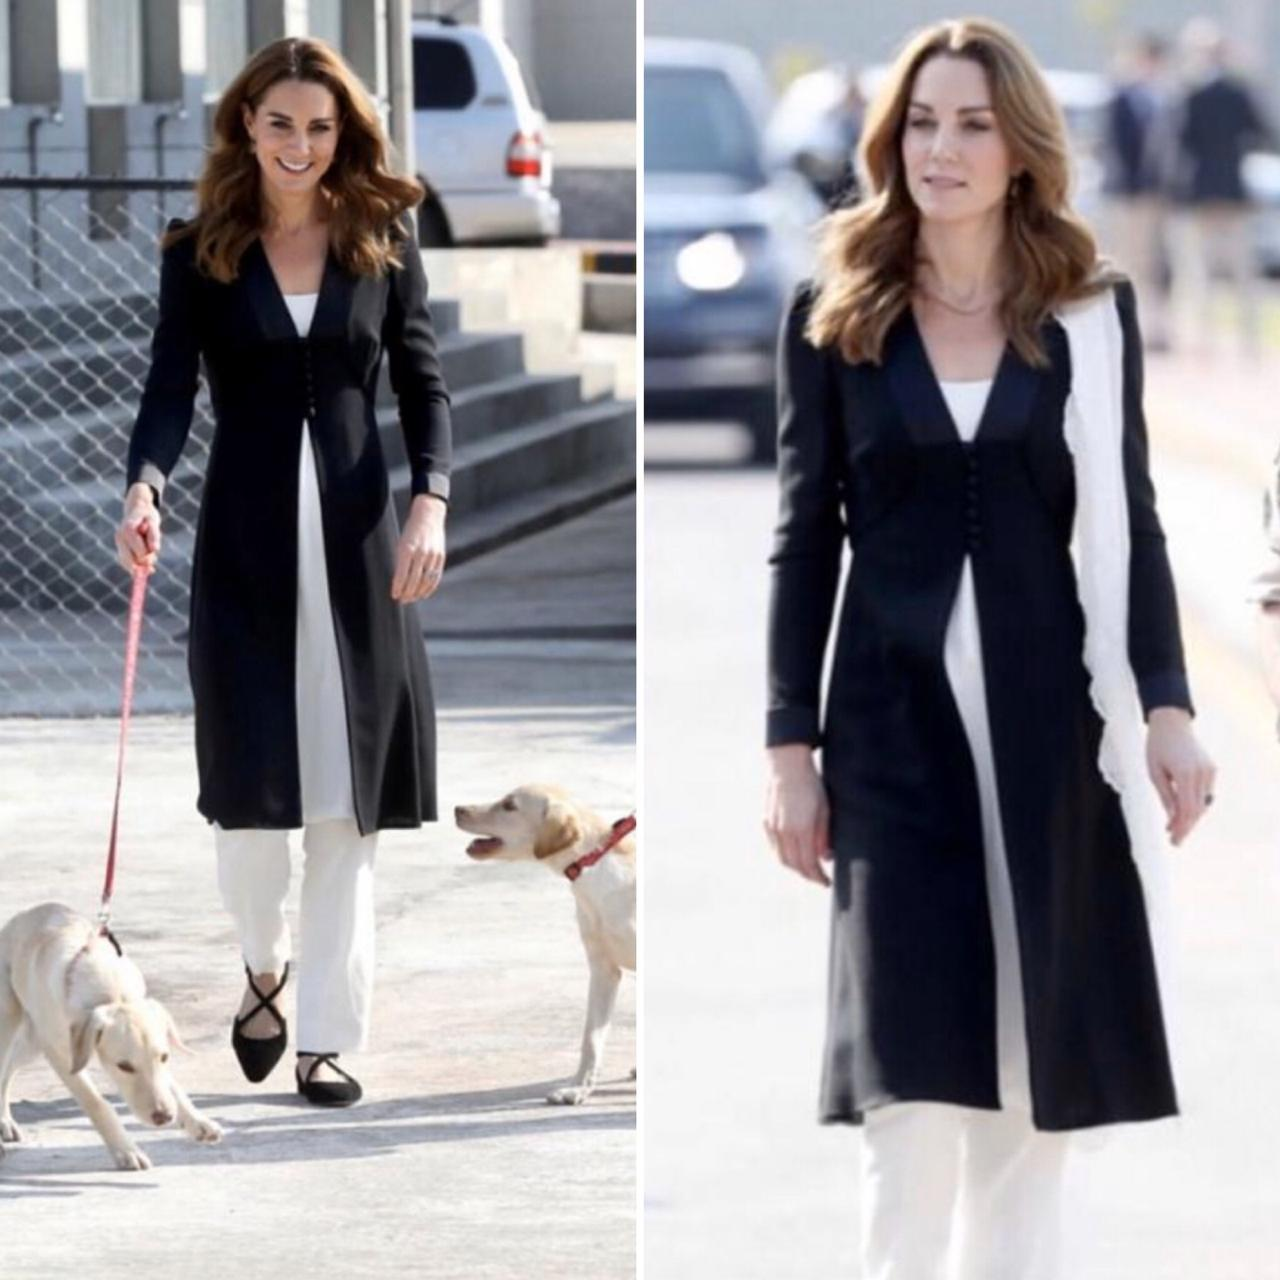 kate middleton cuts a stylish figure in monochrome